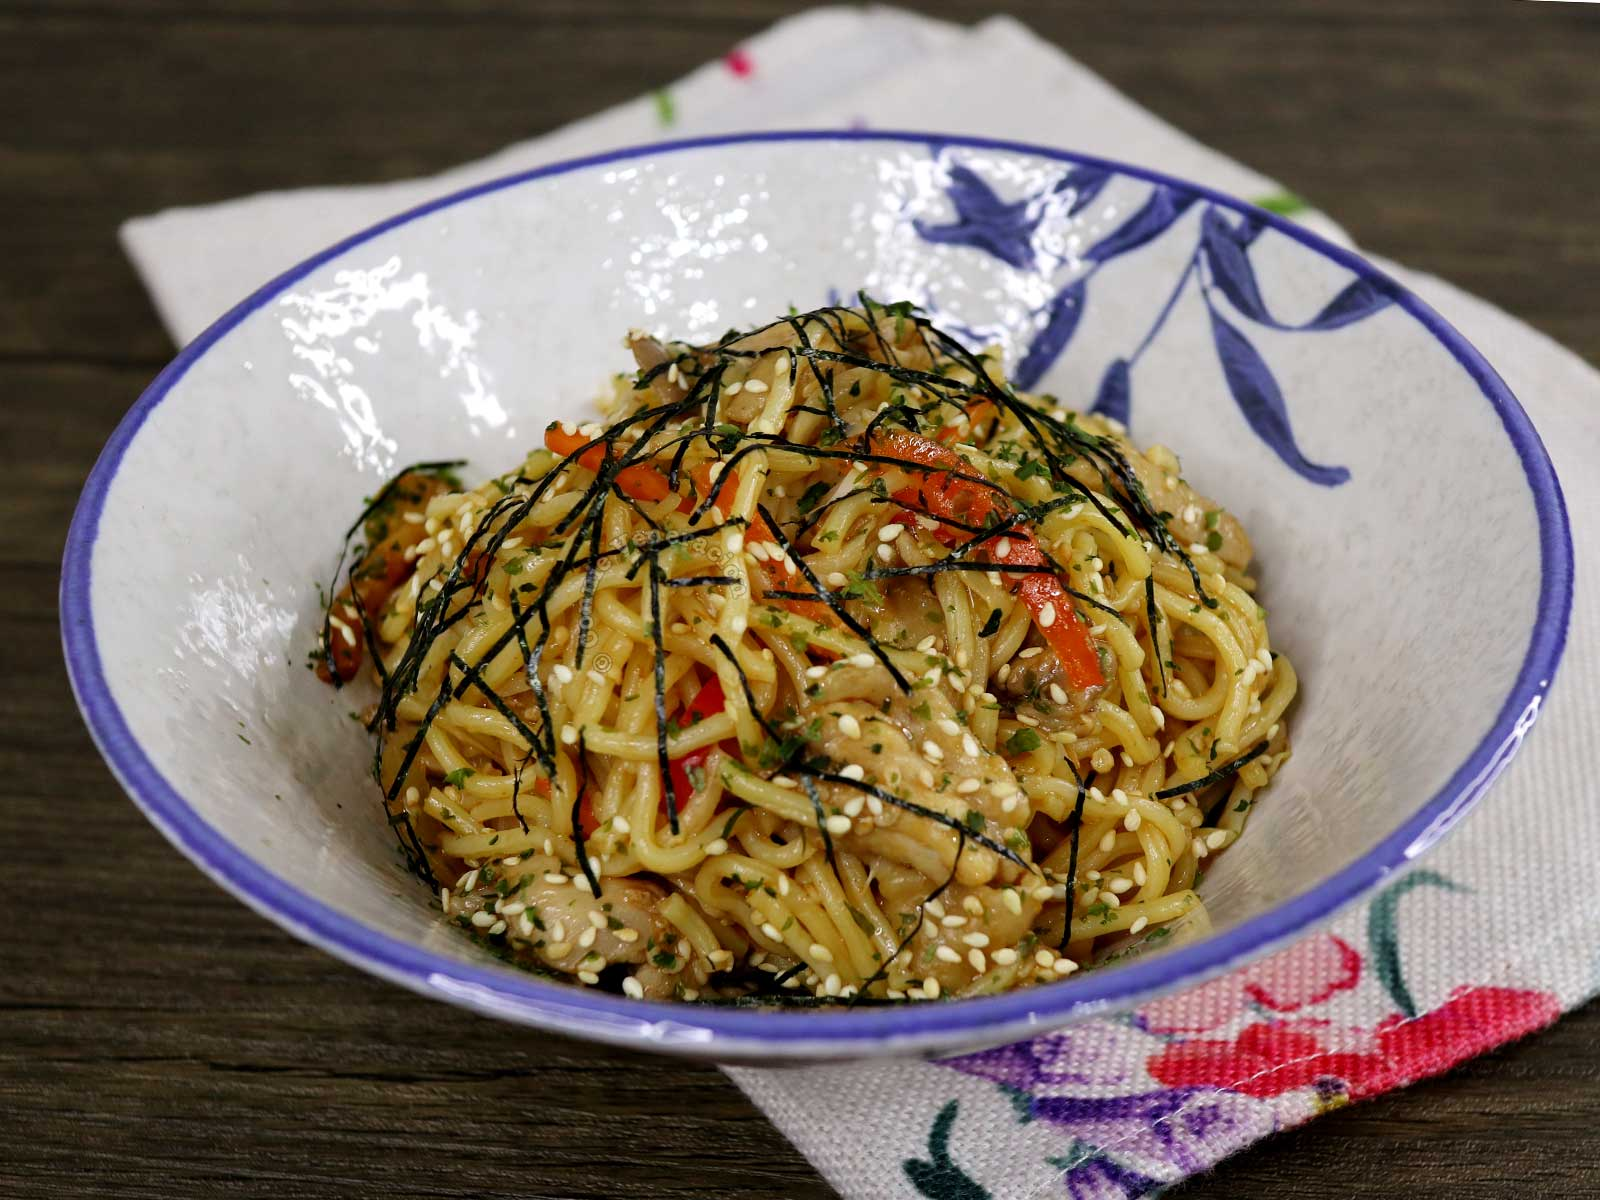 Chicken Yakisoba Sprinkled with Dried Seaweed